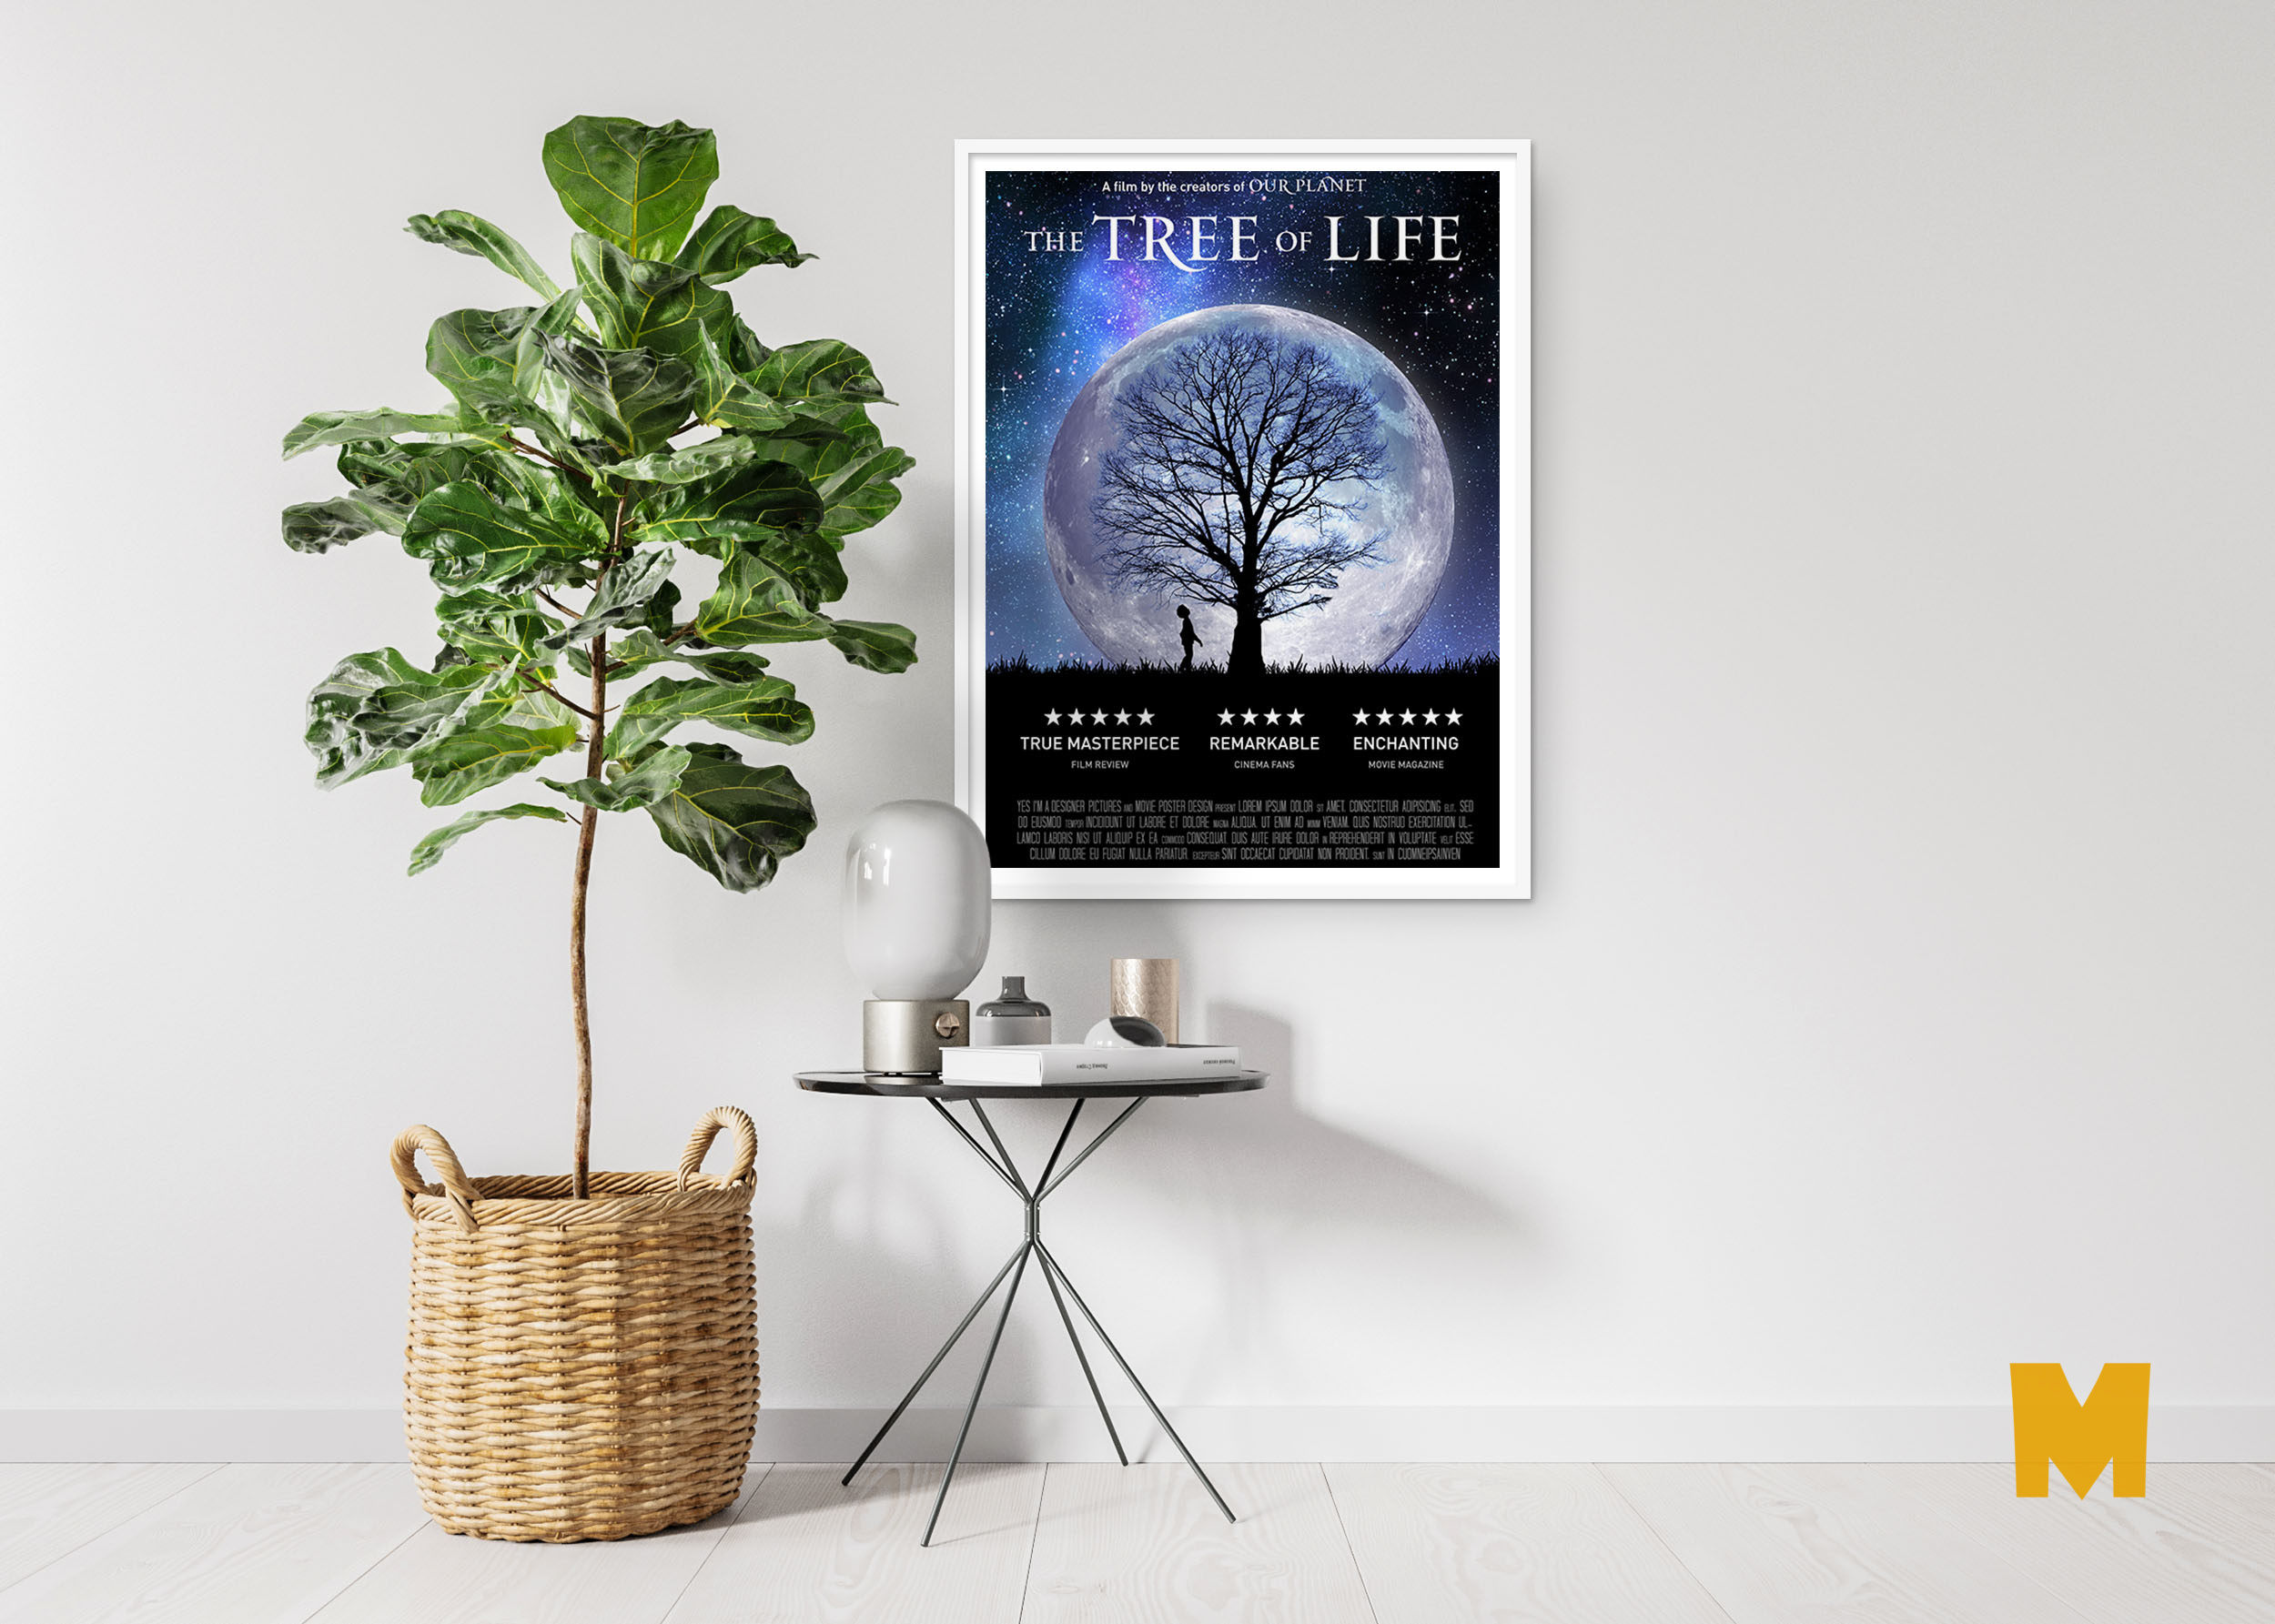 Free Flower Pot Back Wall Poster Mockup